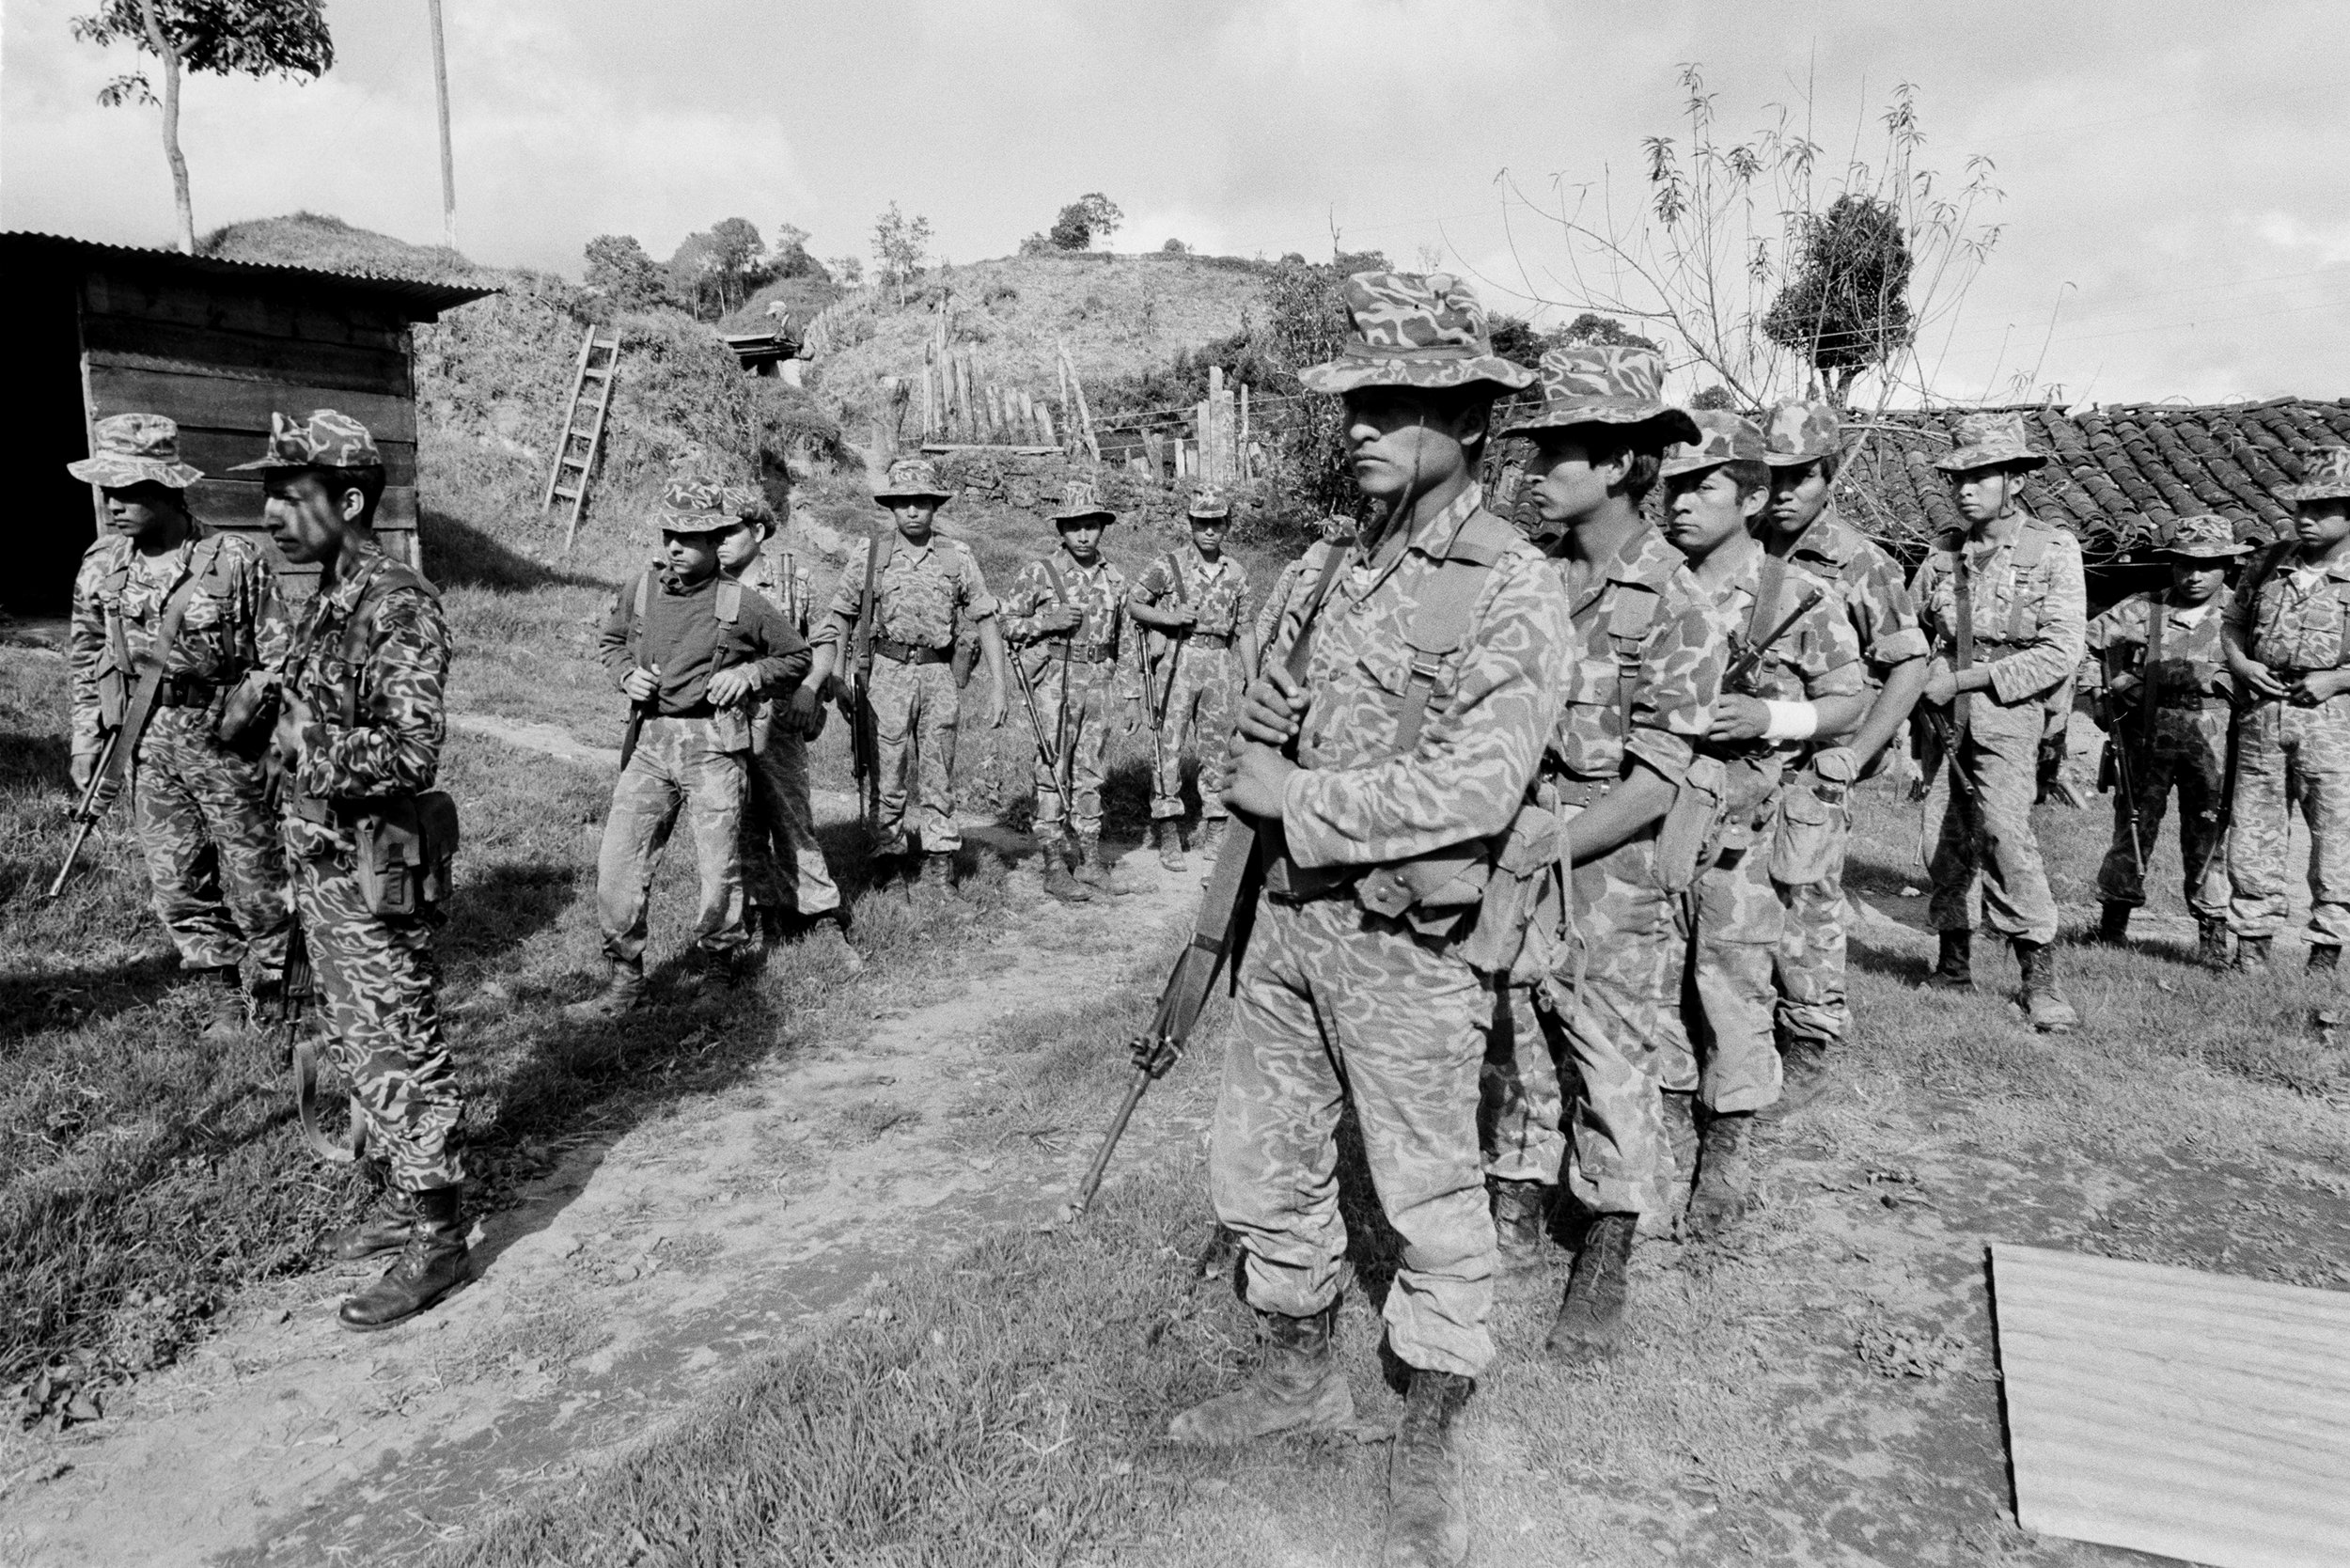 Guatemalan army soldiers form patrols to search for armed militants from the Guerrilla Army of the Poor, EGP, following an attack 24-hours earlier on January 19, 1982 in San Juan Cotzal, Guatemala.